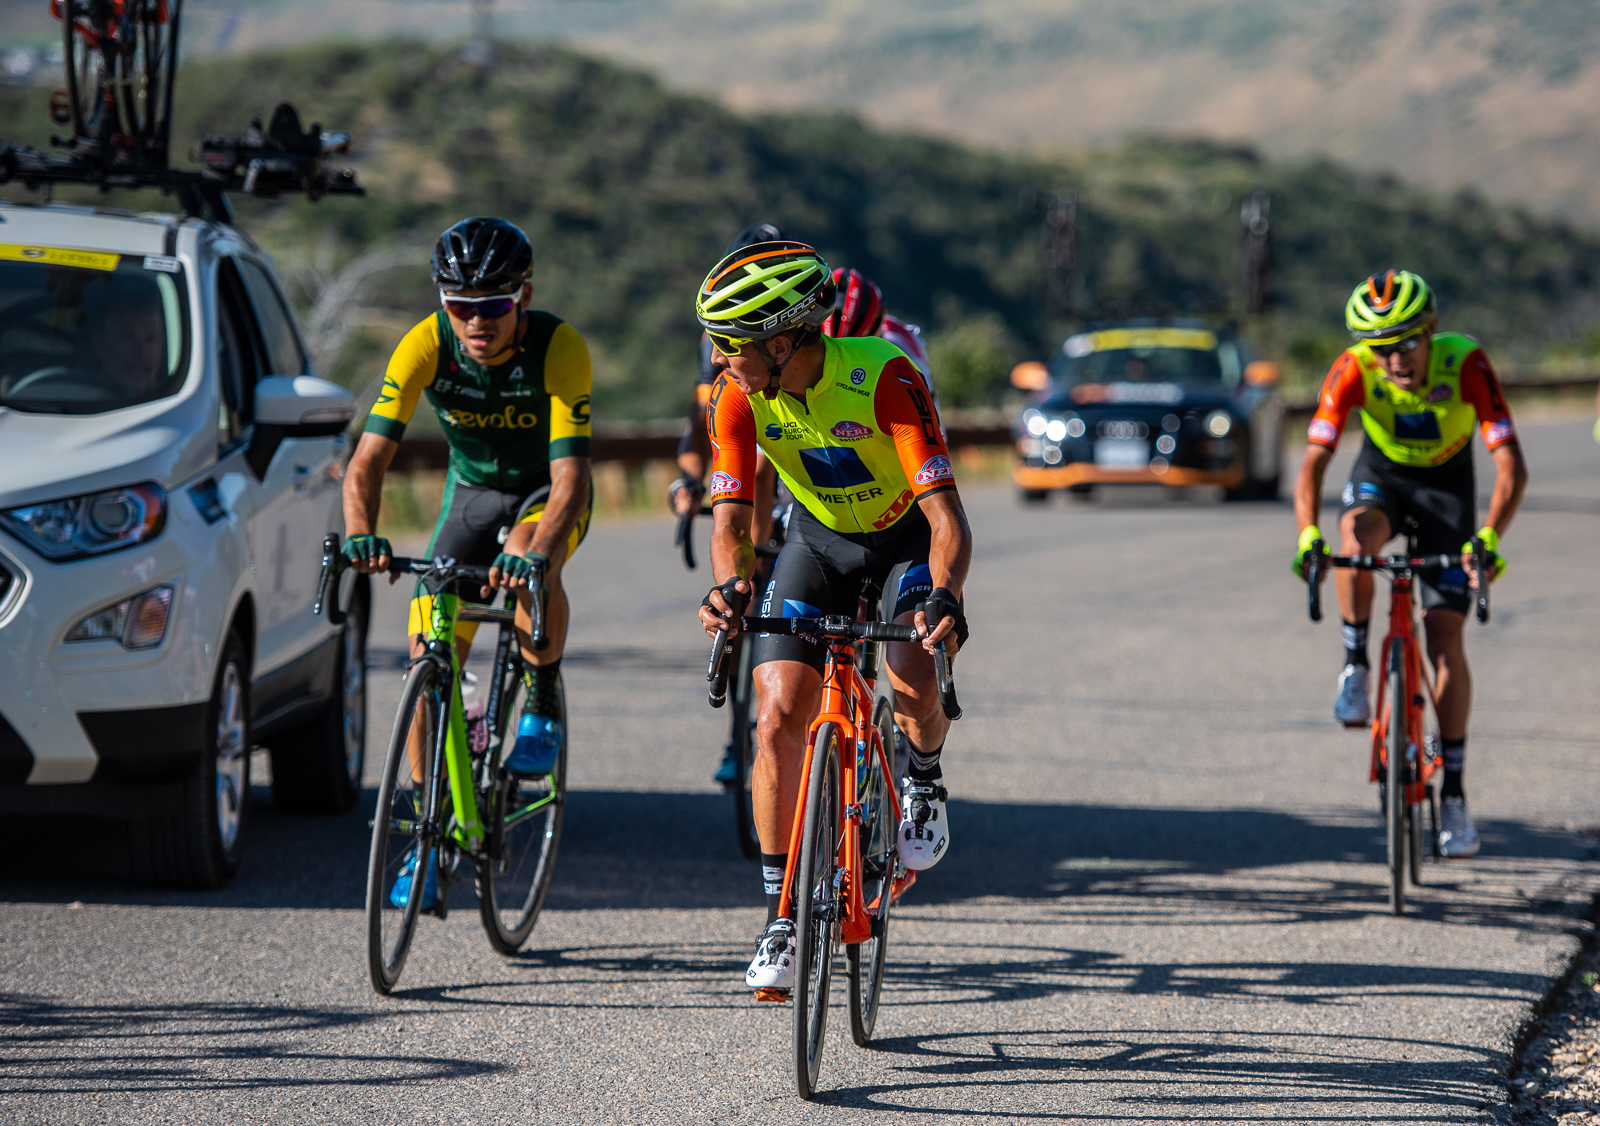 Stage 5, 2019 Tour of Utah. Photo by Steven L. Sheffield